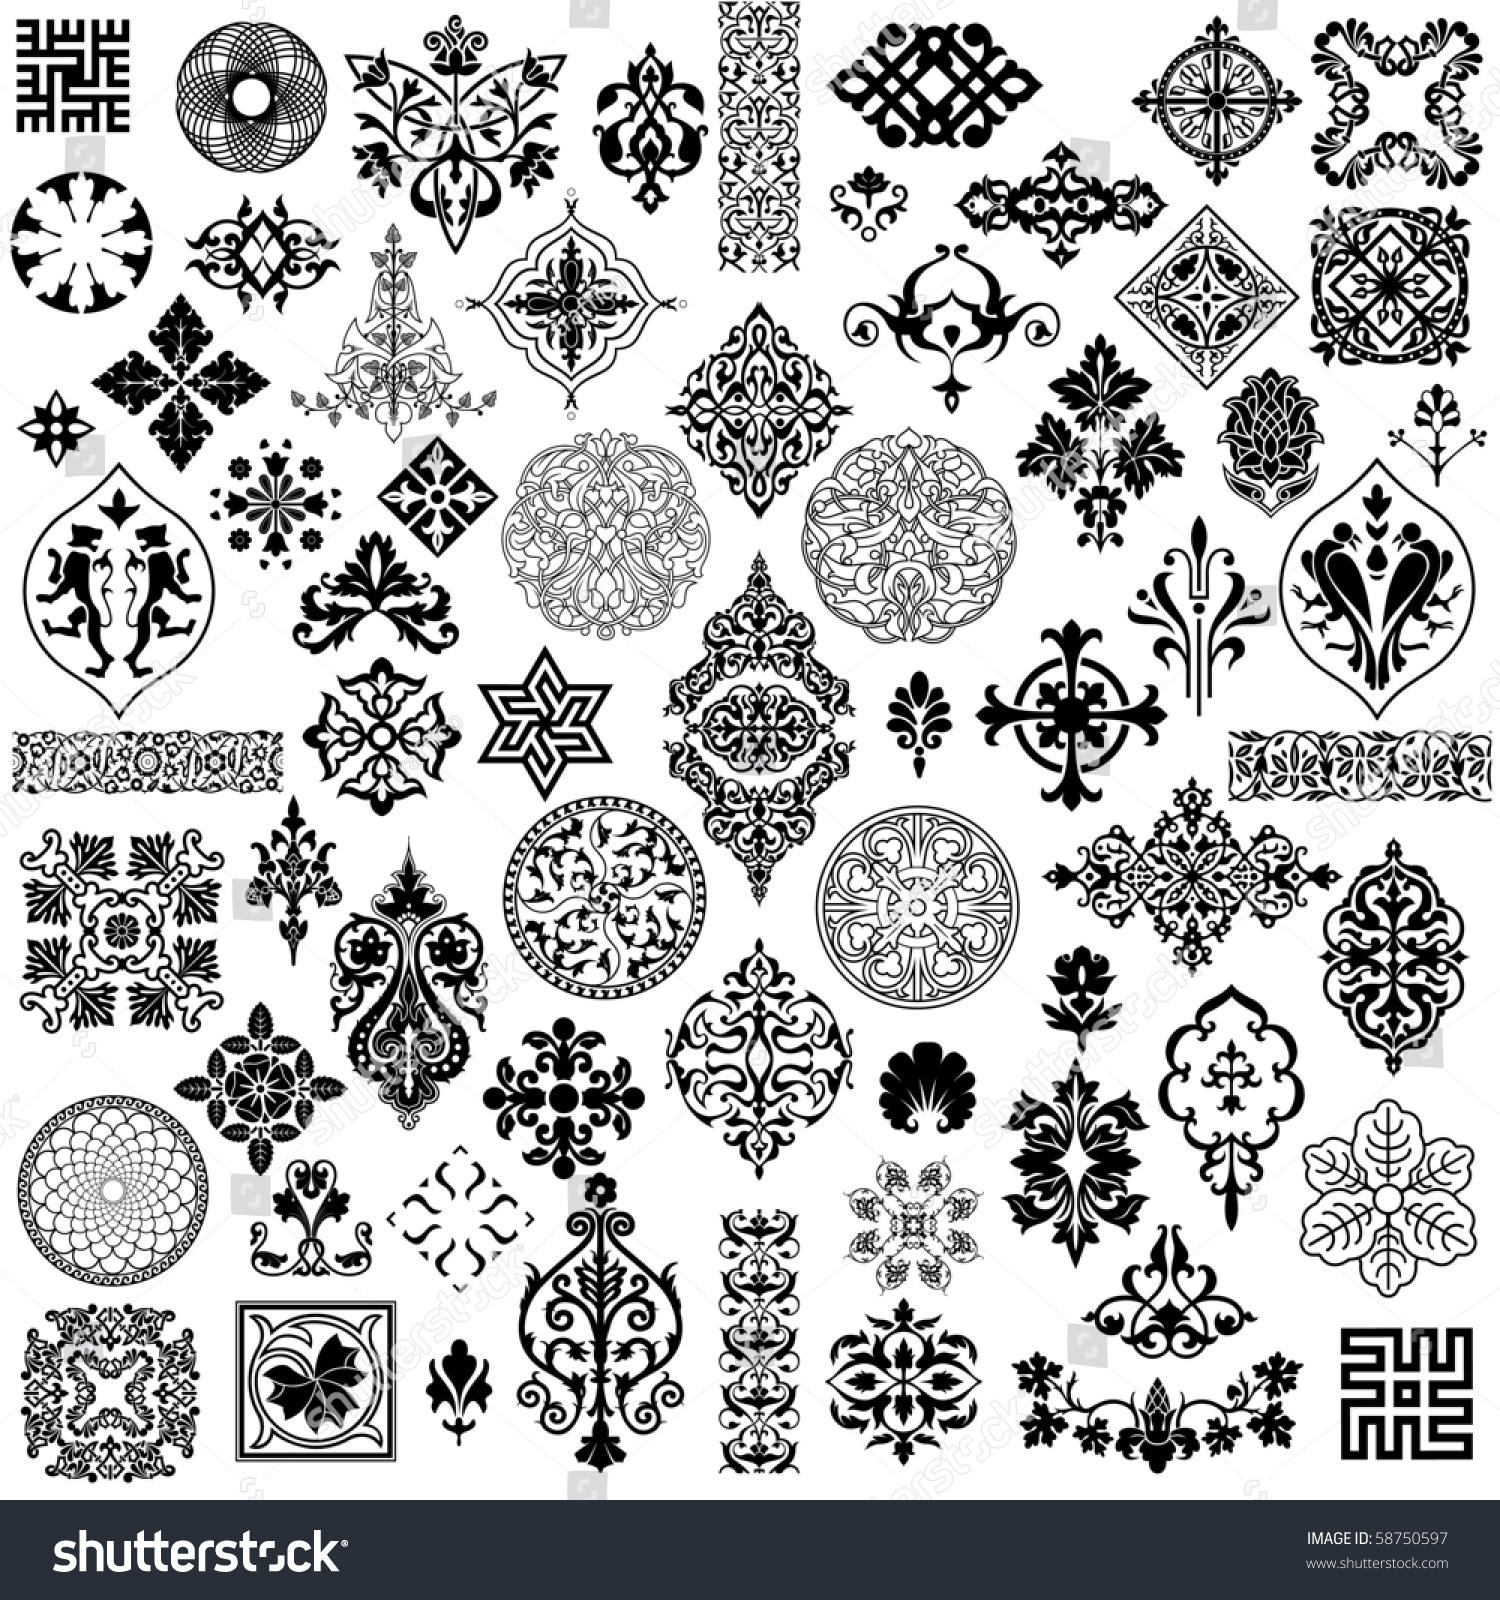 Different style design elements. Different Style Design Elements Stock Vector 58750597   Shutterstock